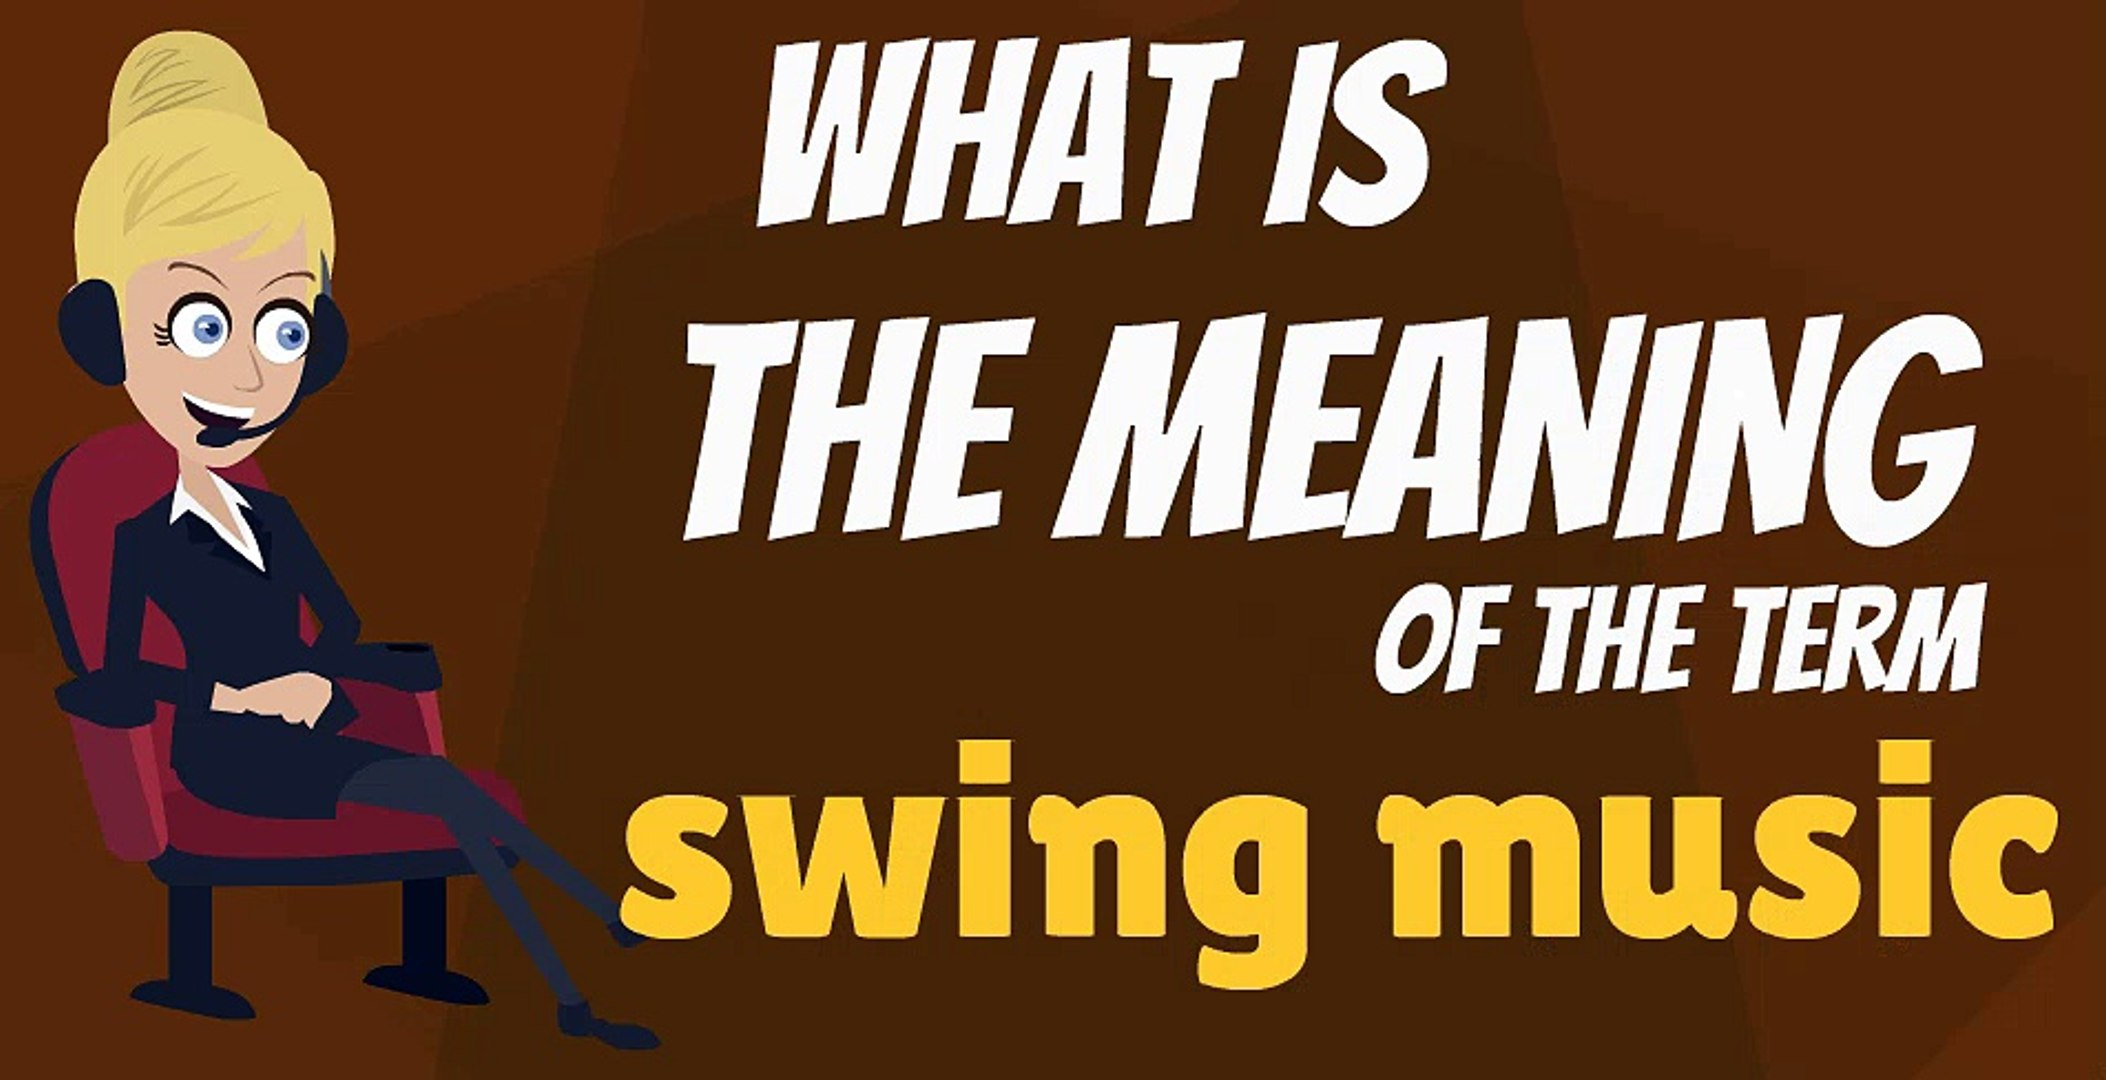 What Is Swing Music What Does Swing Music Mean Swing Music Meaning Definition Explanation Pronunciation